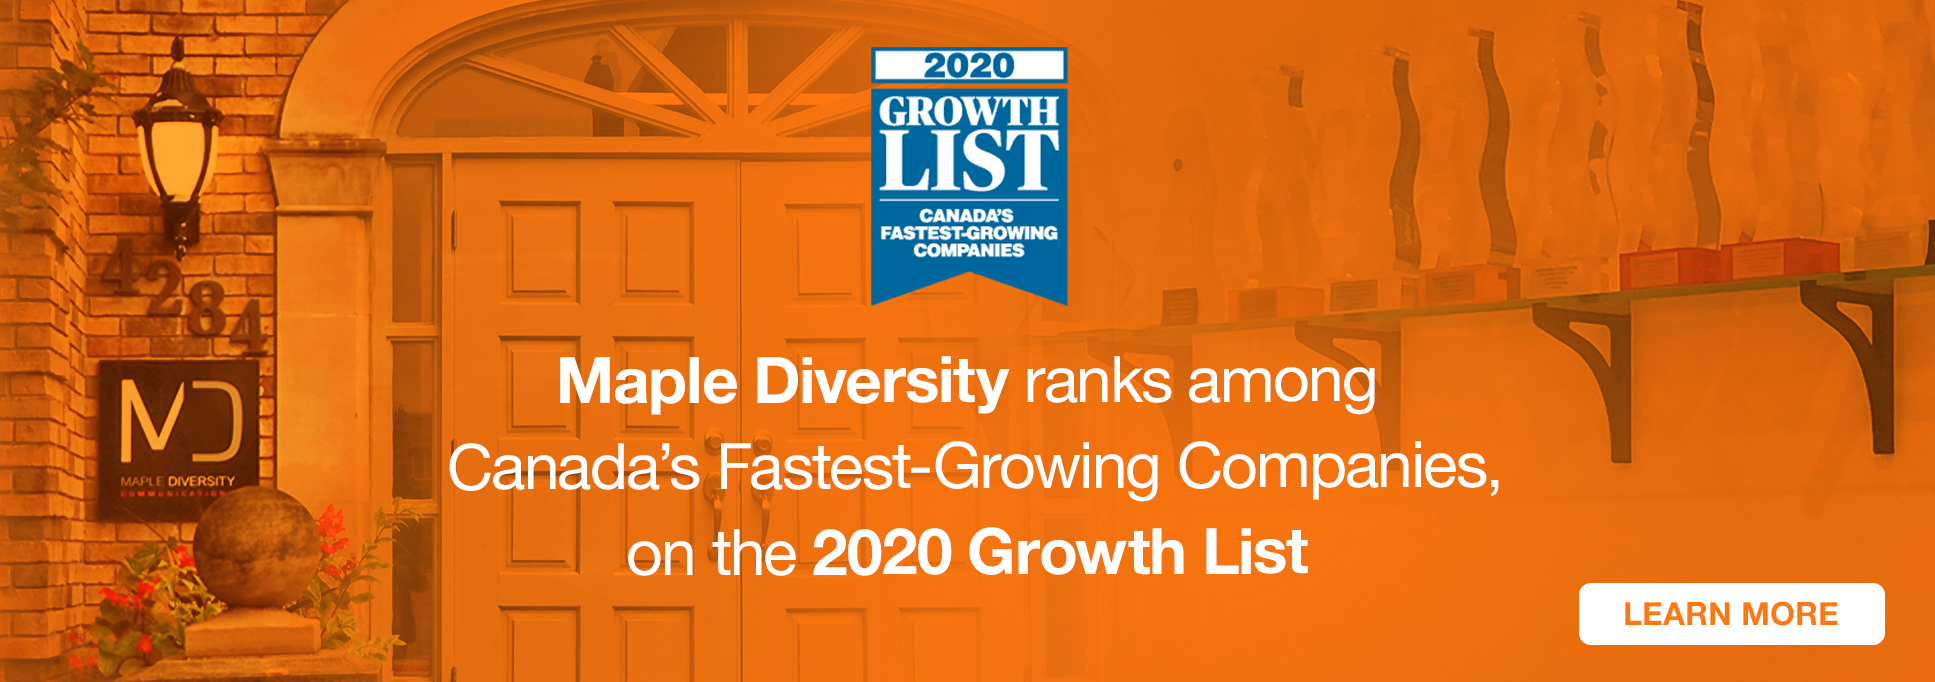 Canada-Fastest-Growing Companies-2020-Maple-Diversity